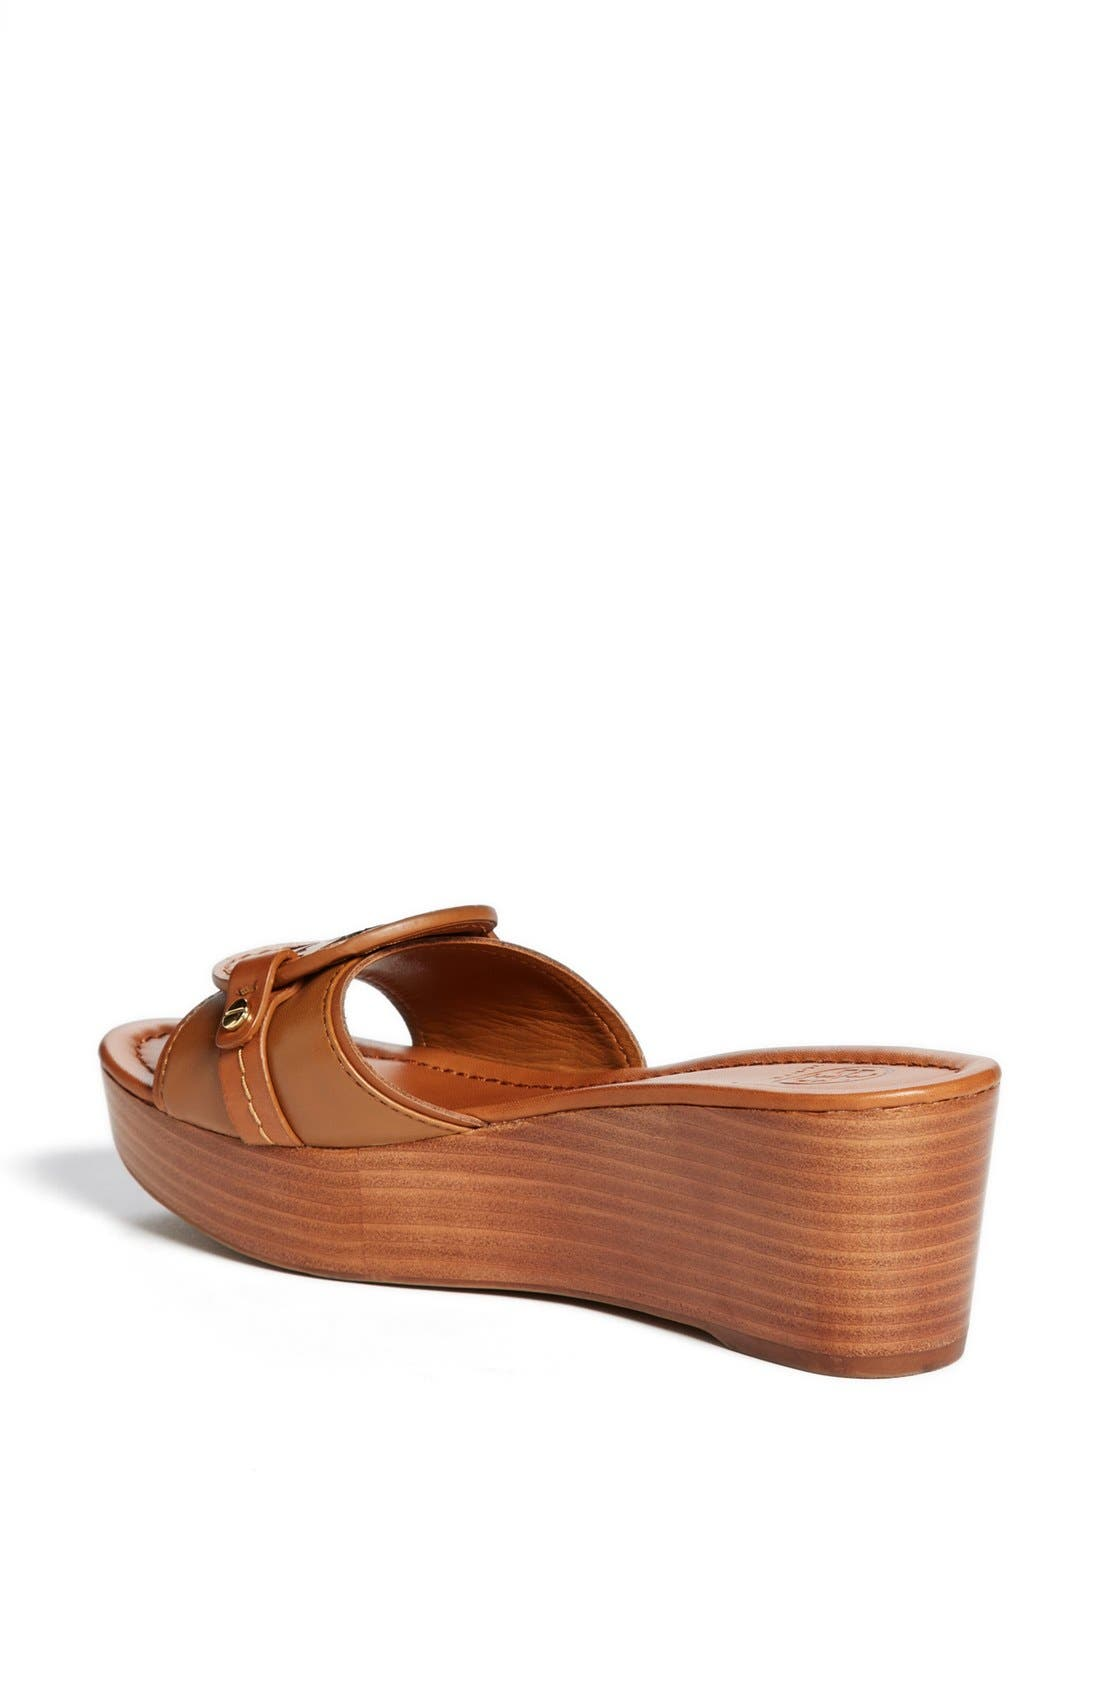 Alternate Image 2  - Tory Burch 'Madalena' Platform Slide Sandal (Online Only)